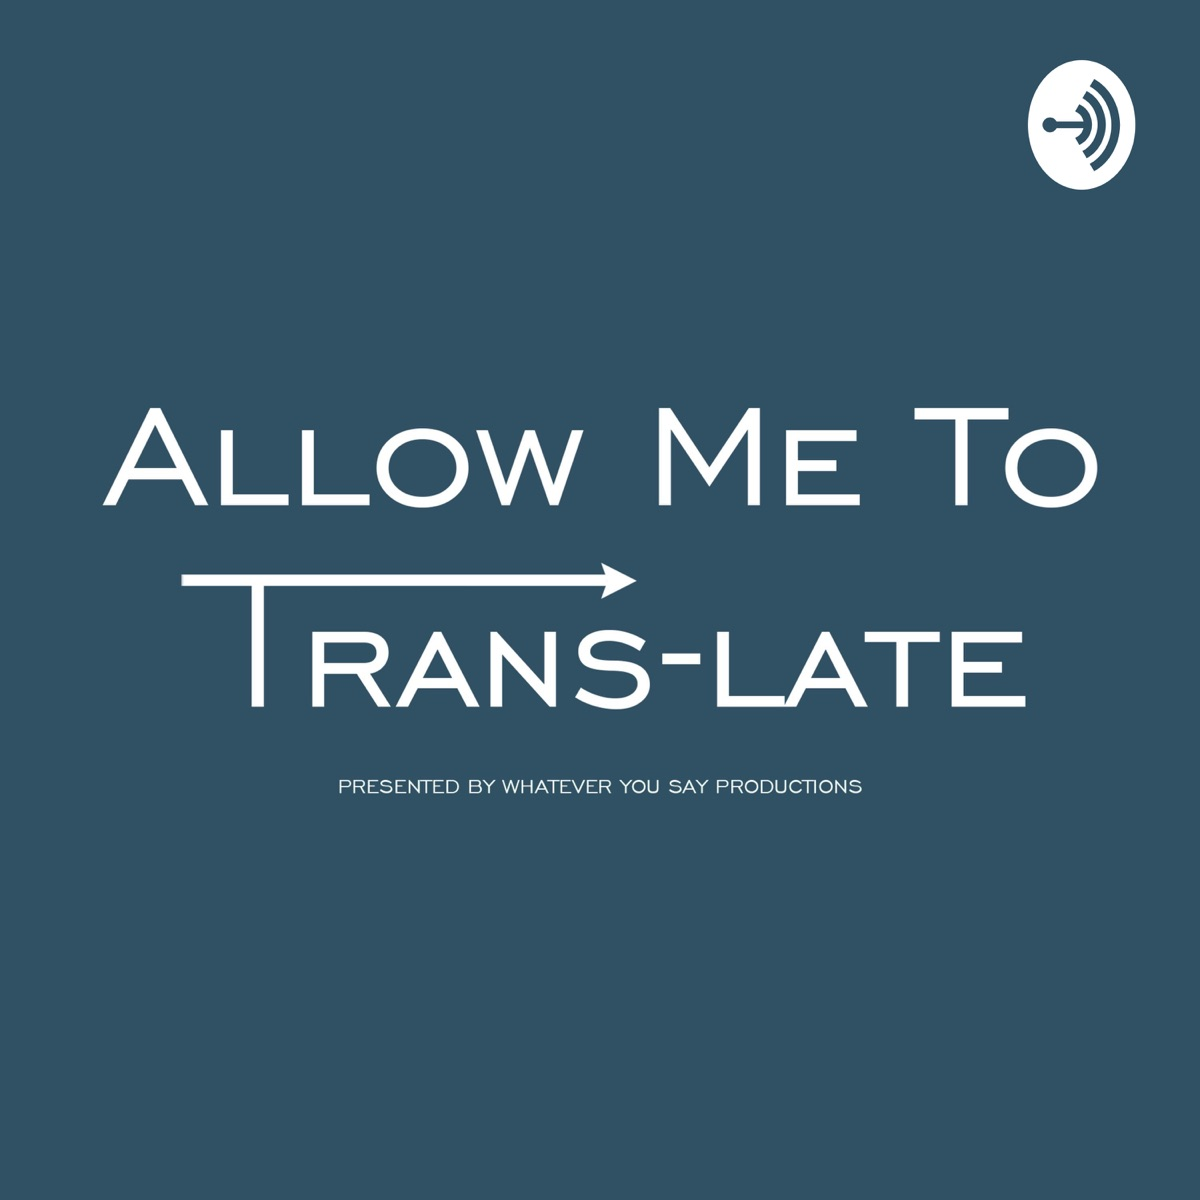 Allow Me To Trans-Late